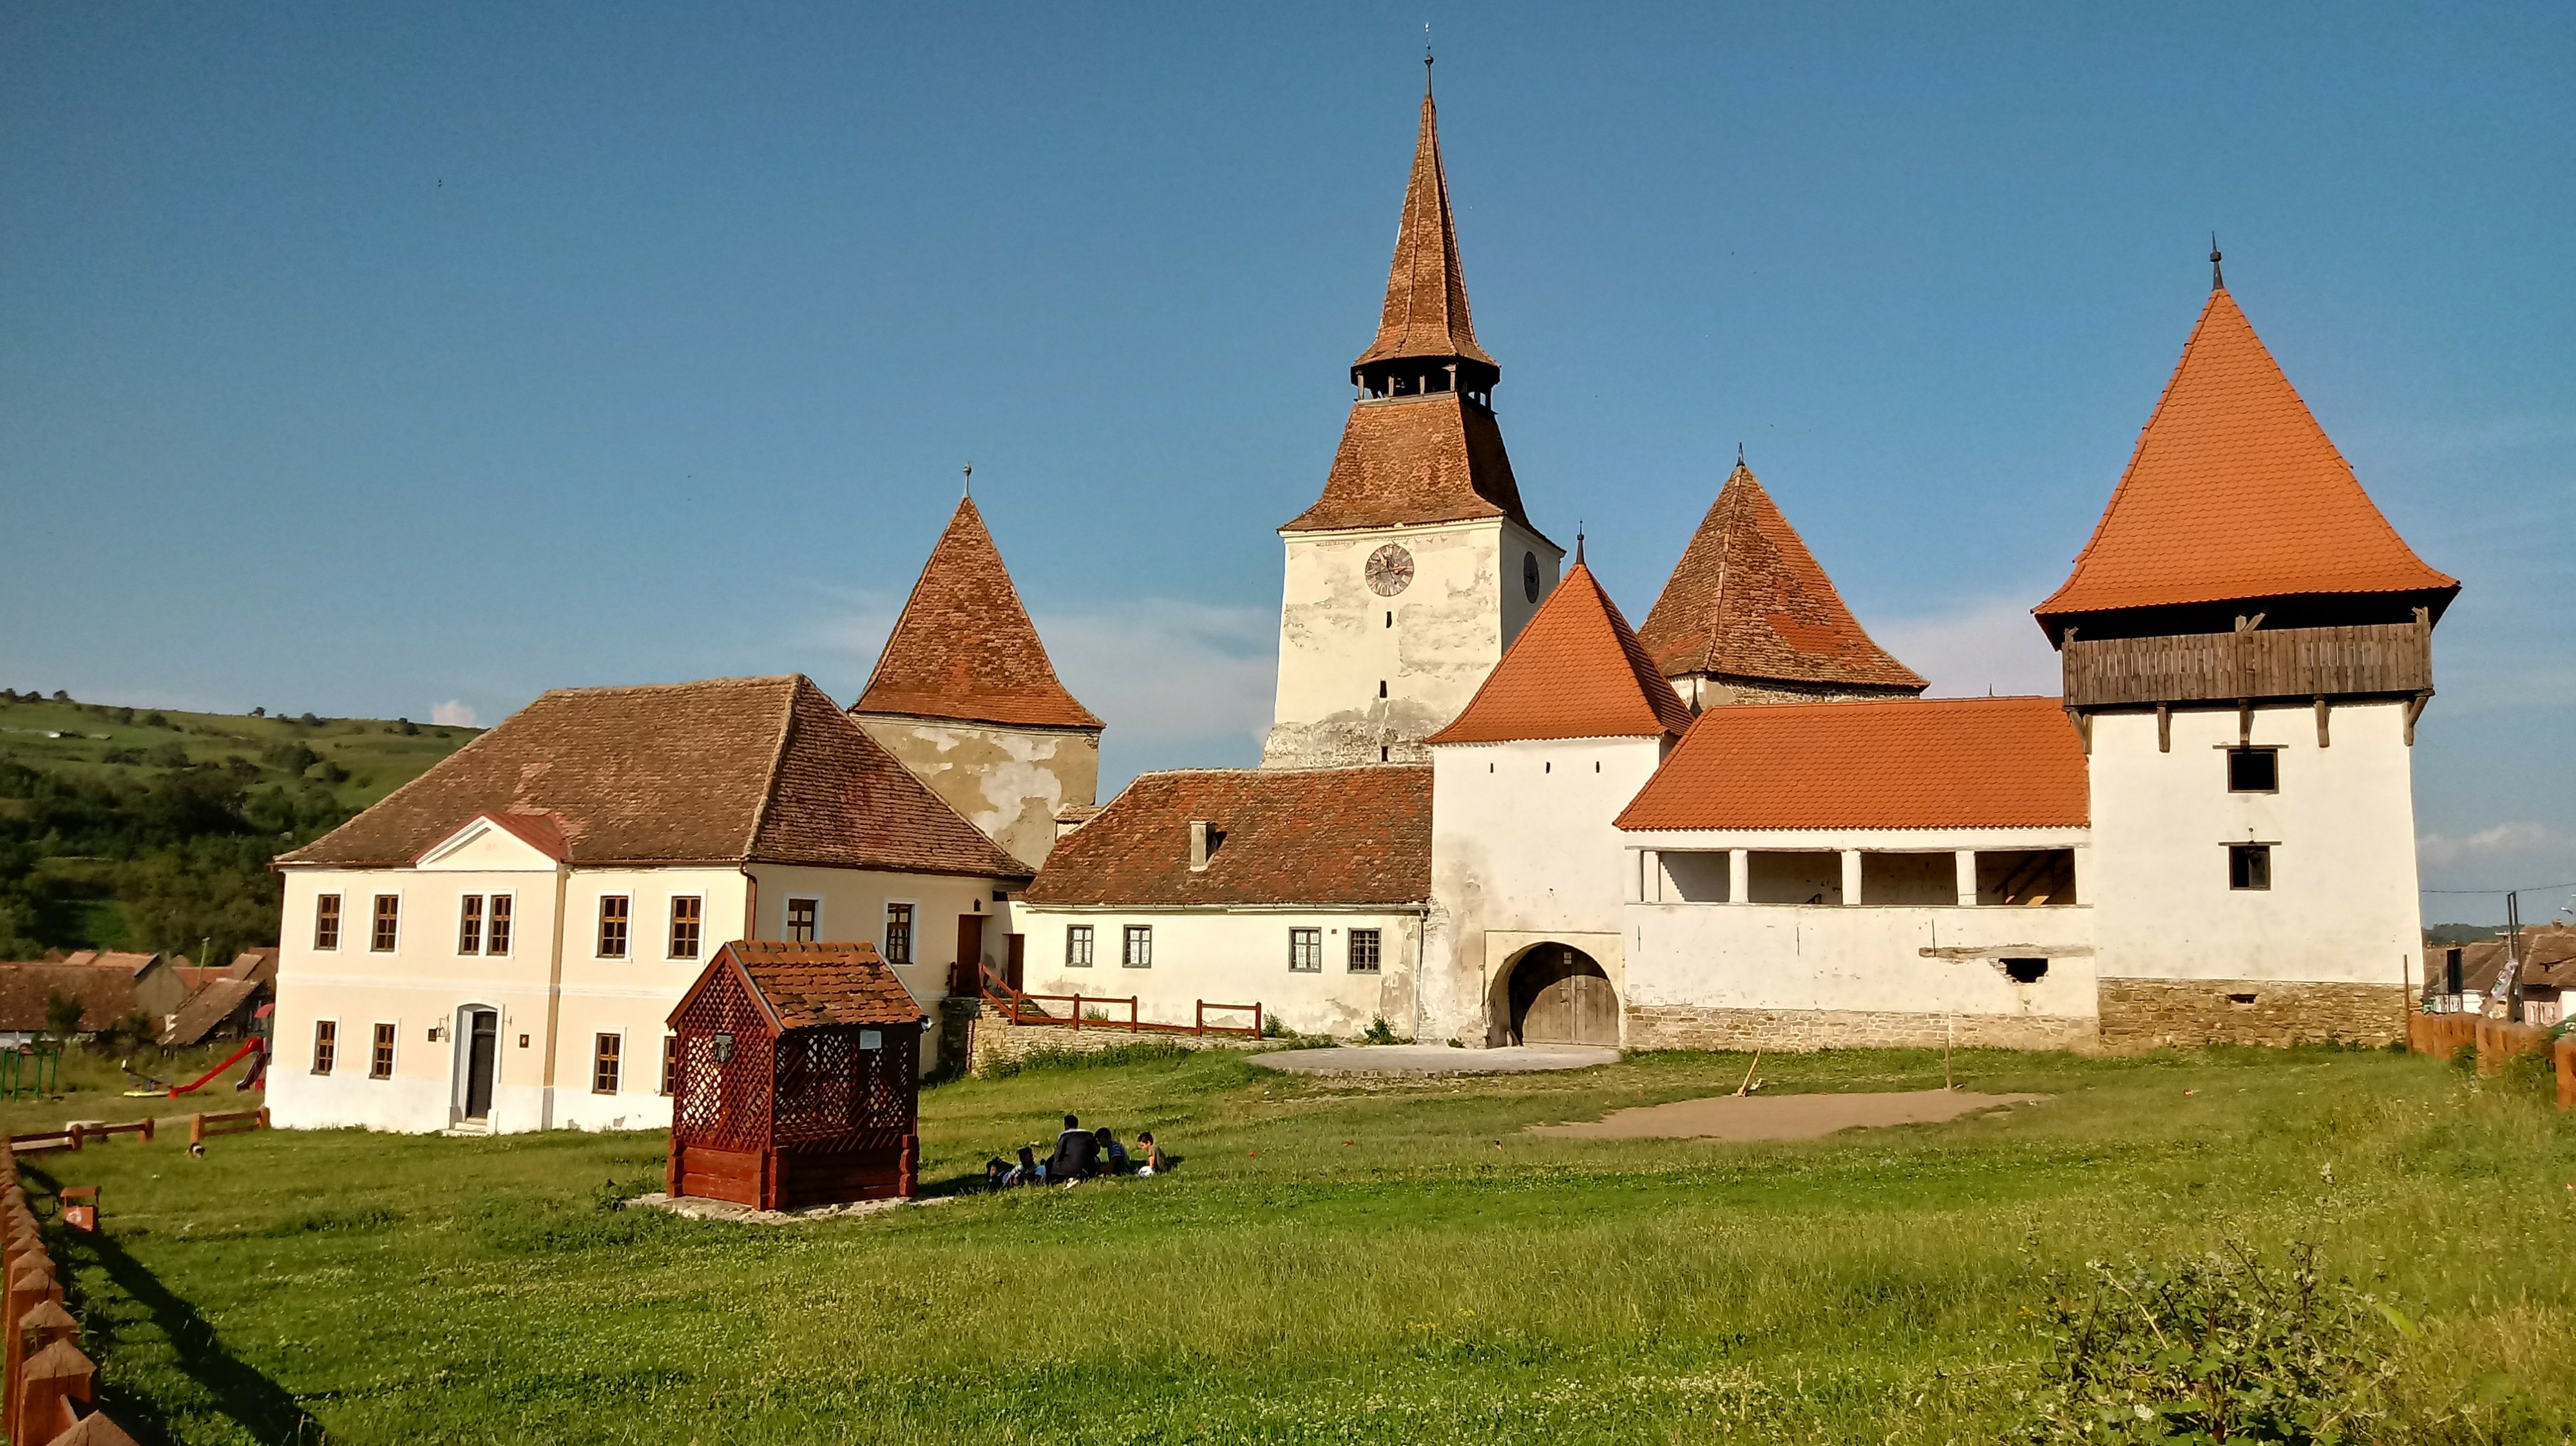 new concept 2bb9f 94fbb A Siege Mentality Not Lost To History – Prior To Arrival  The Fortified  Church at Szekelyderzs (Part One)